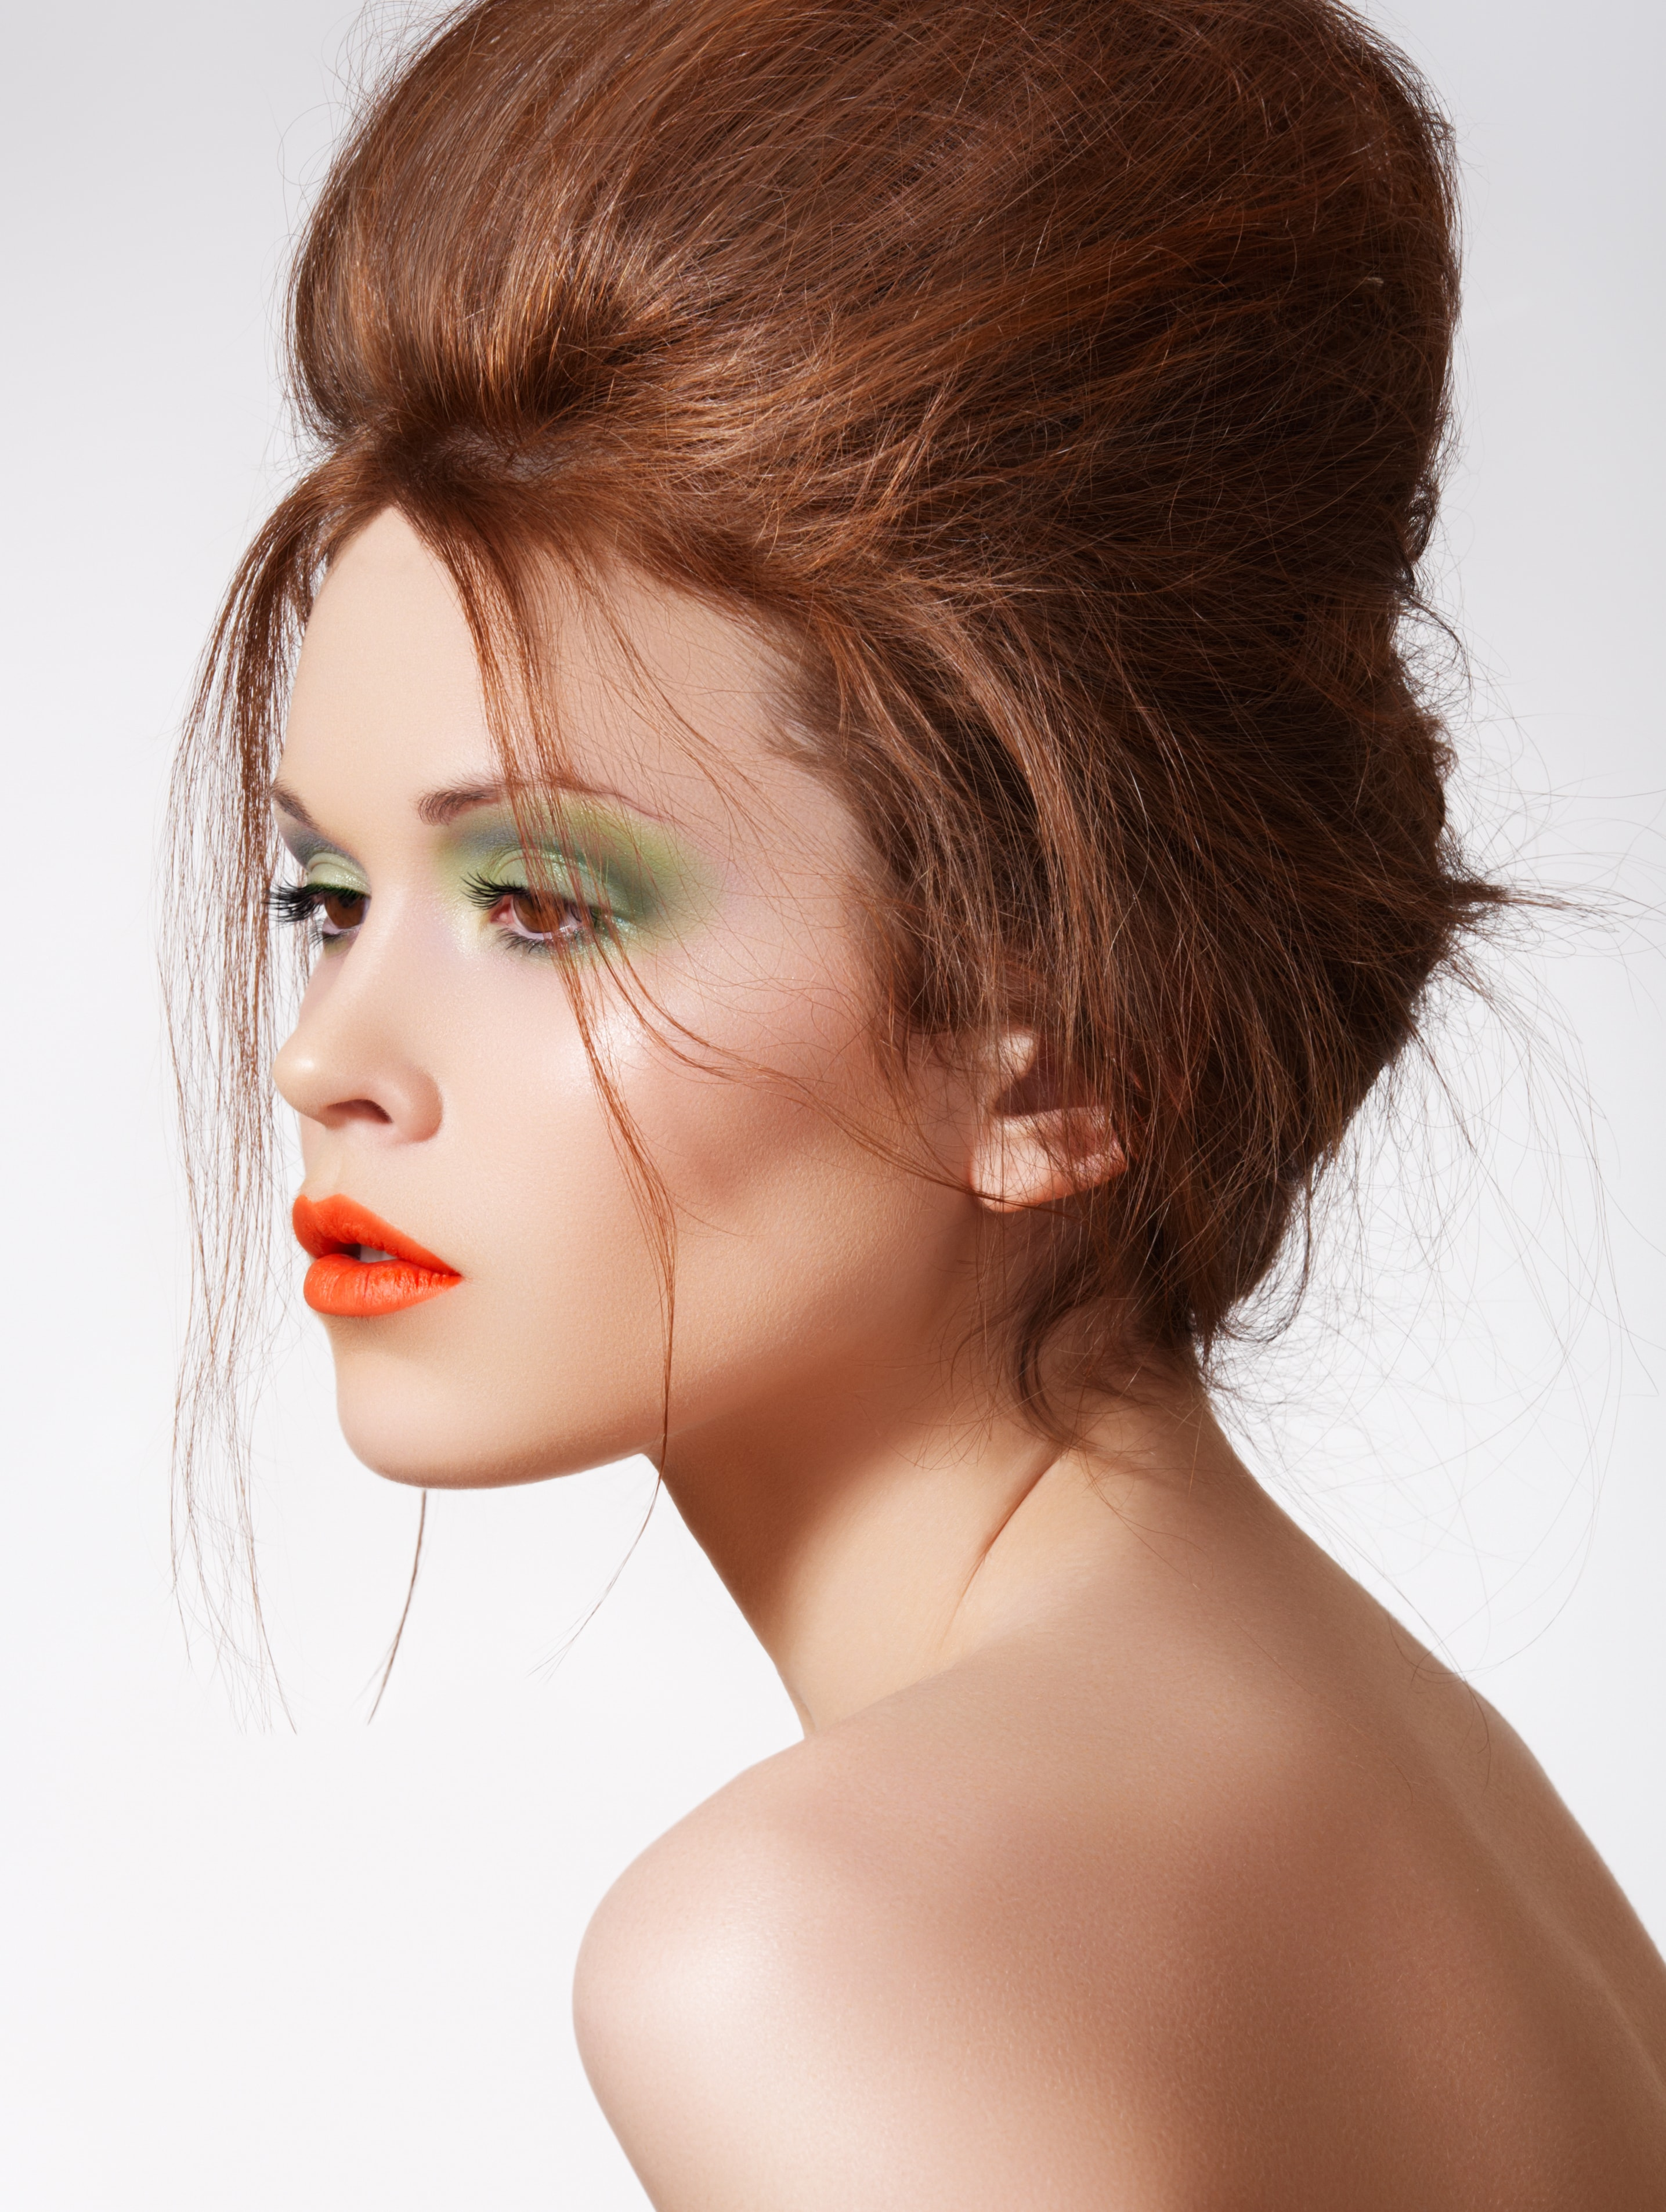 Adored Vintage 12 Vintage Hairstyles To Try For: Vintage Hairstyle Ideas: A Modern Take On Old Trends